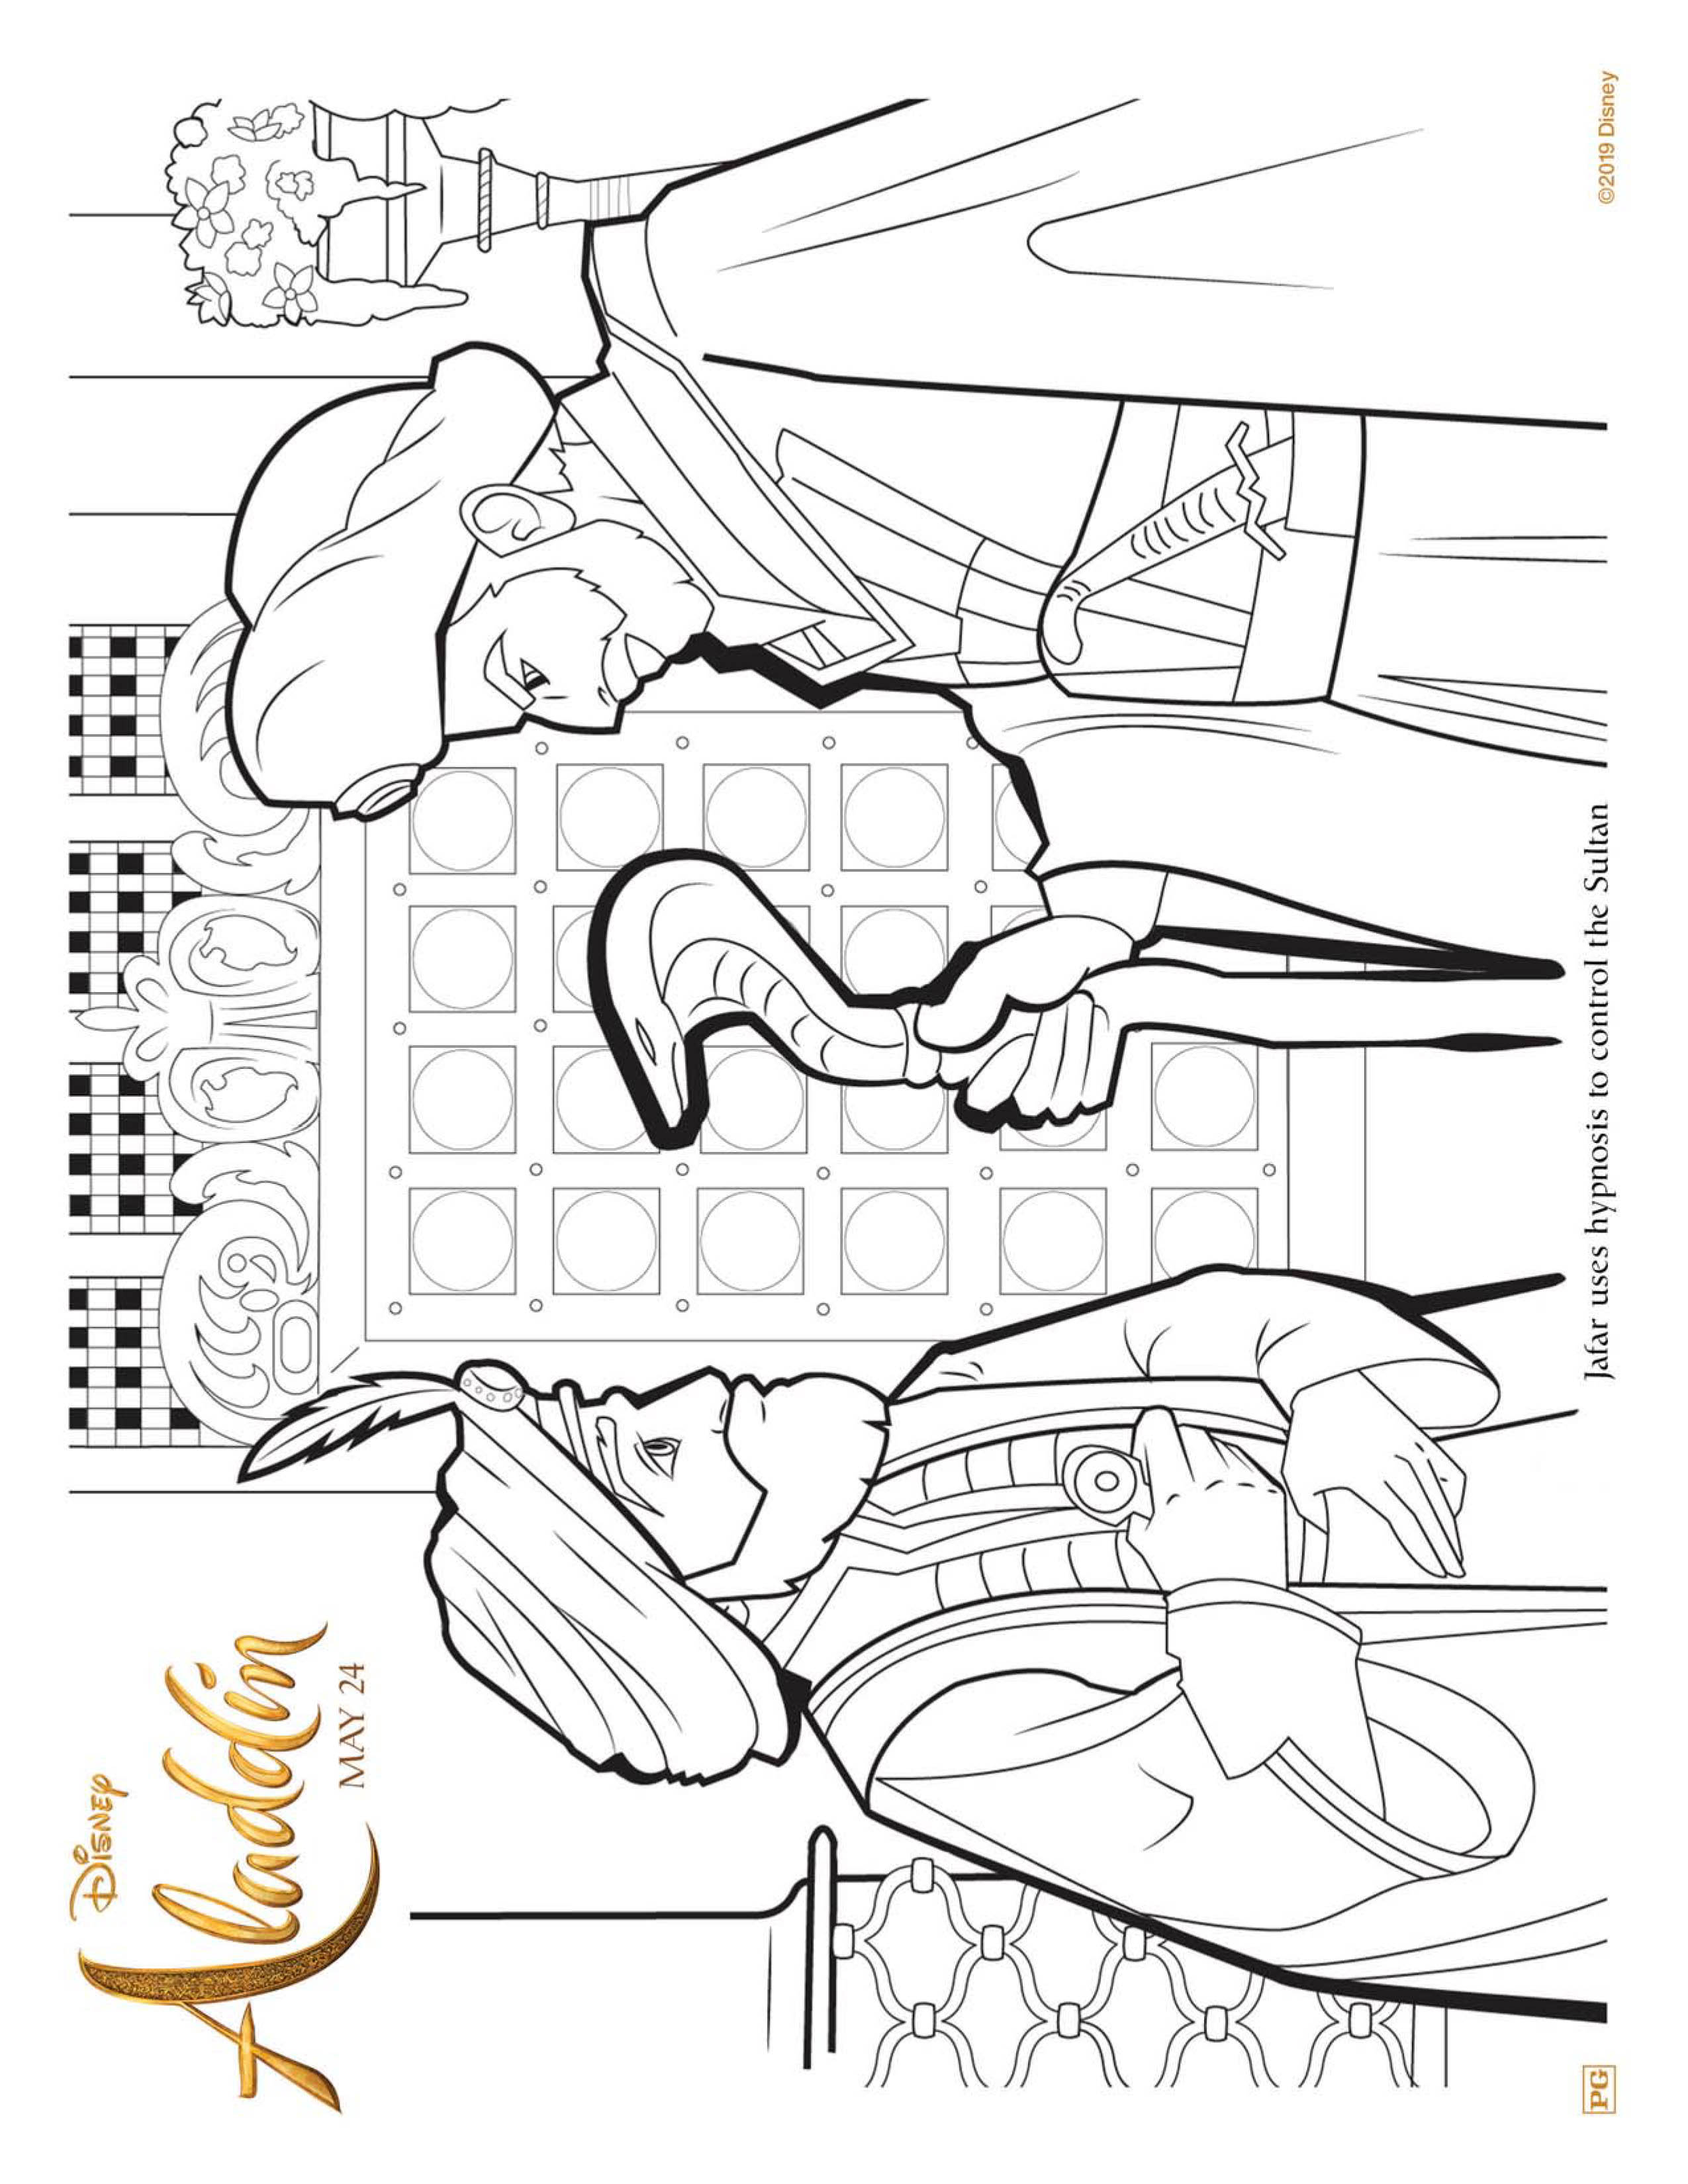 Aladdin Coloring Pages and Activity Sheets | Crazy Adventures in ... | 3300x2550